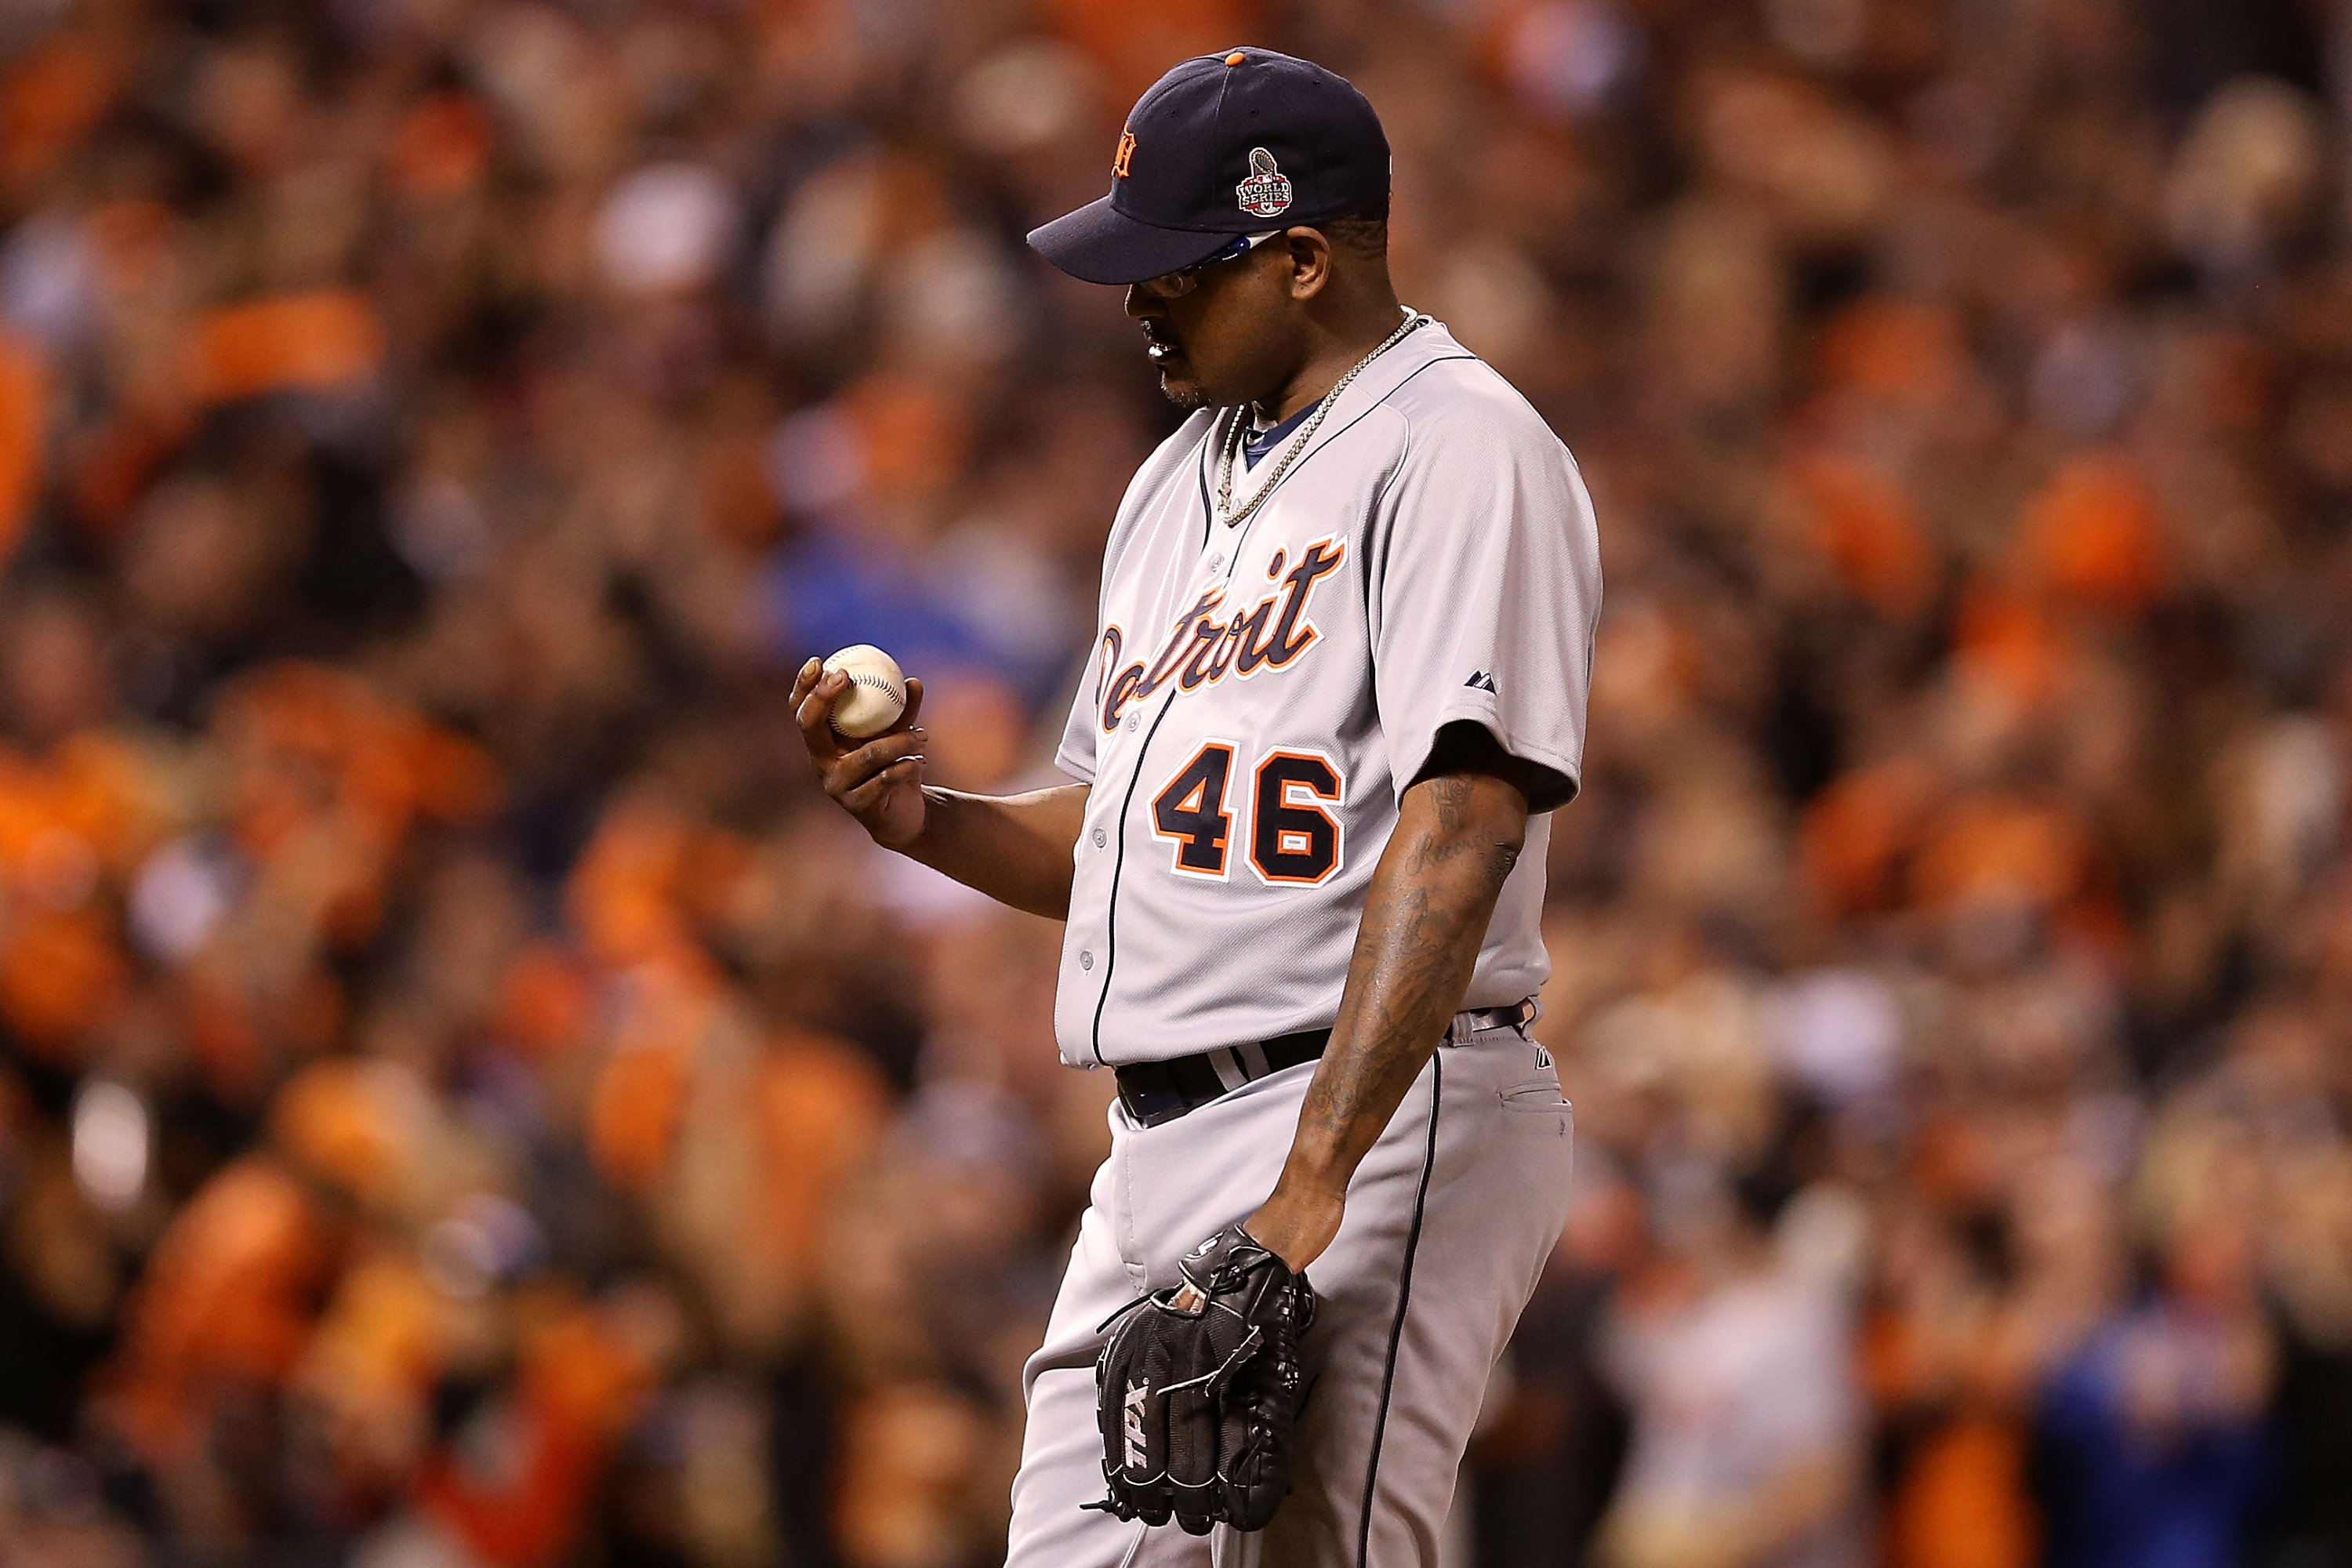 In his last Major League appearance, Jose Valverde gave up four hits and two runs. (Getty Images)